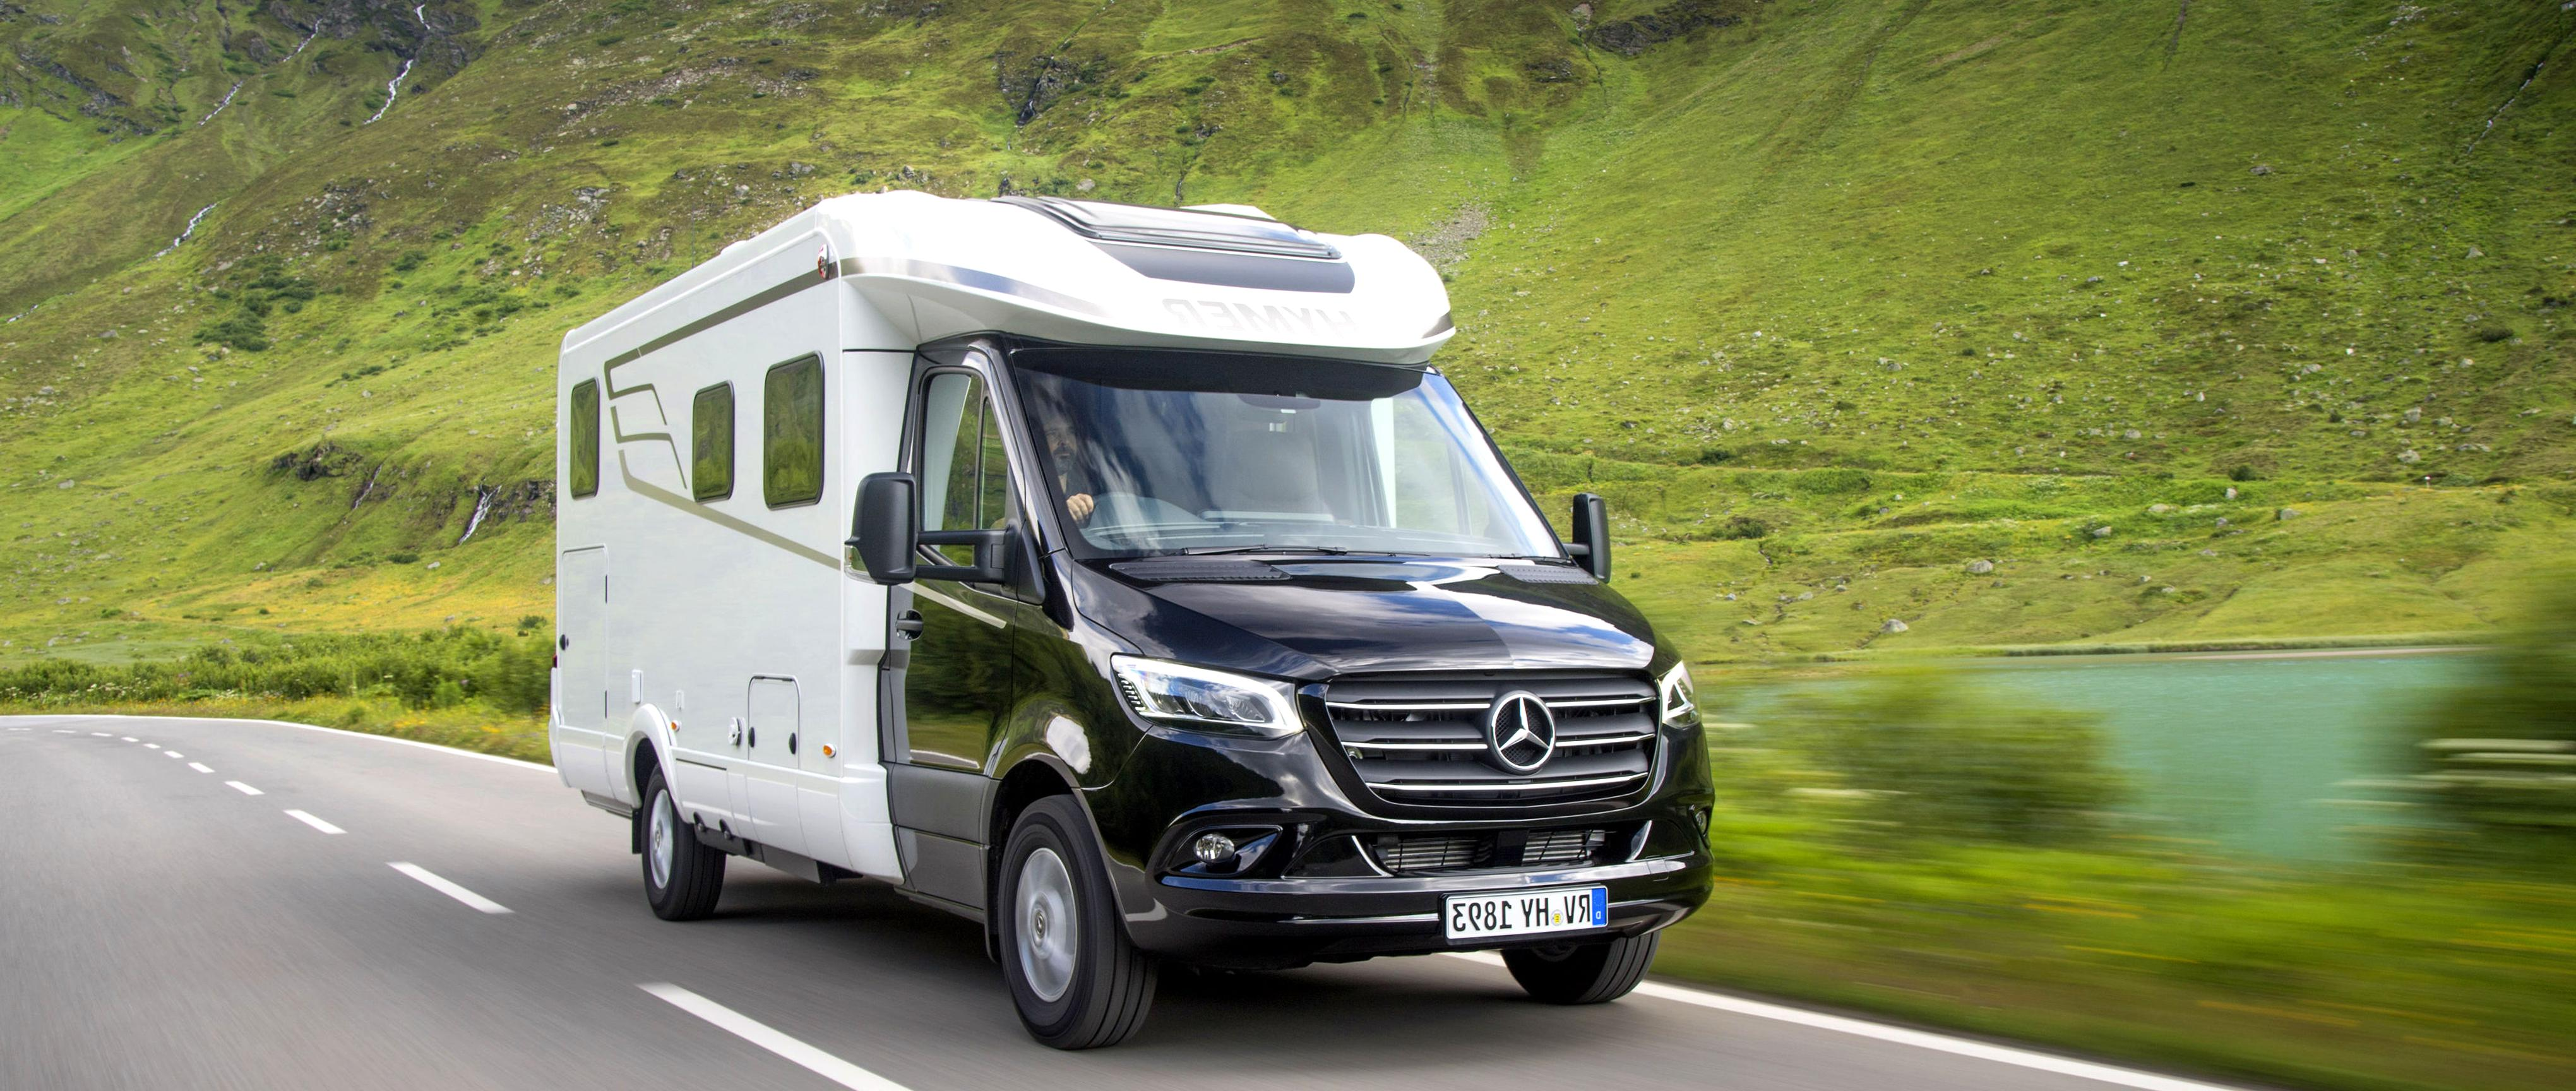 hymer mercedes camping d'occasion